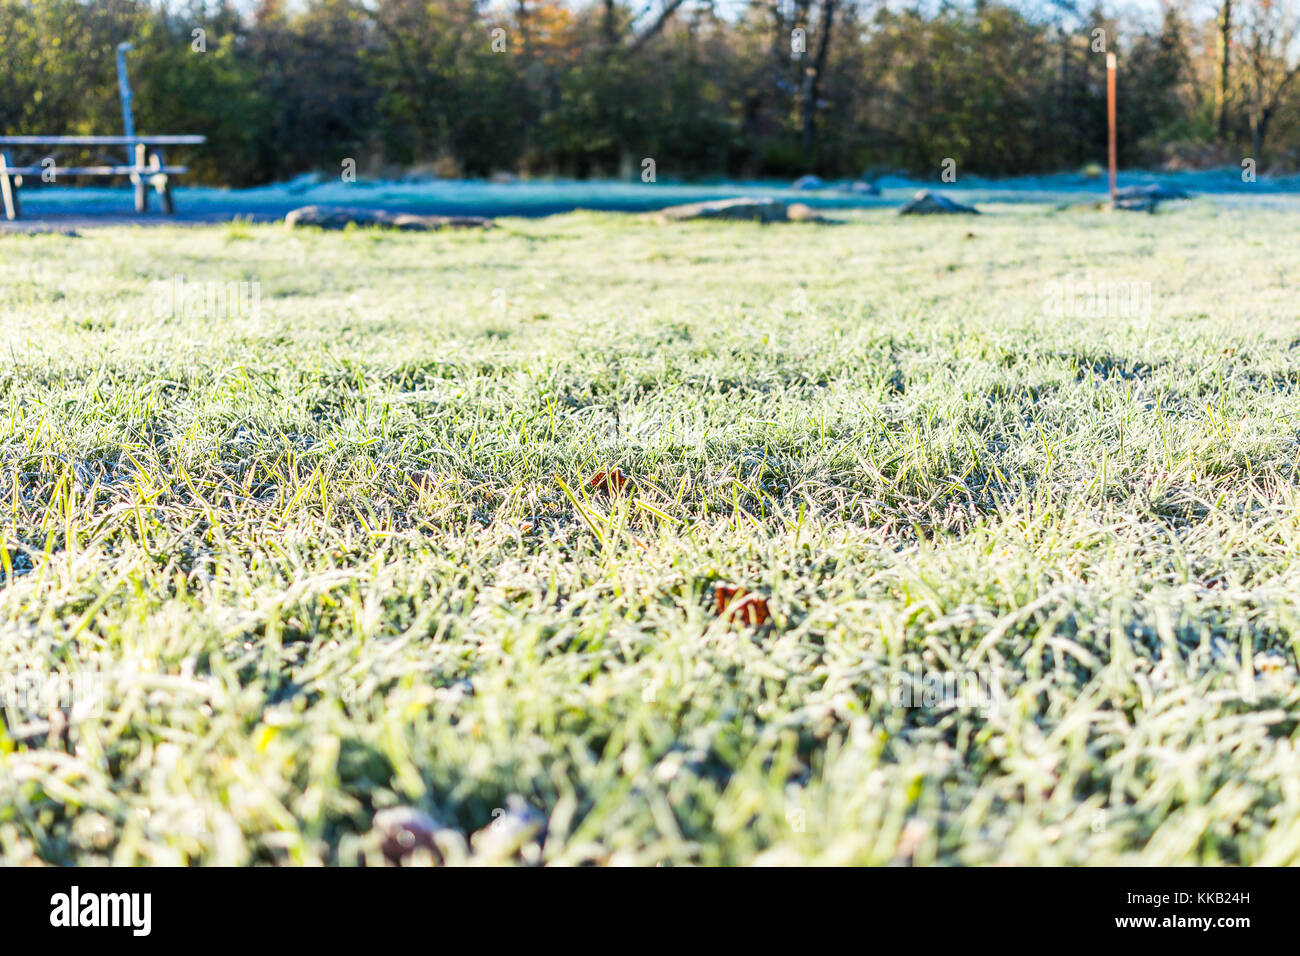 White frost ice crystals on green lawn grass in morning on ground by forest and campground park - Stock Image